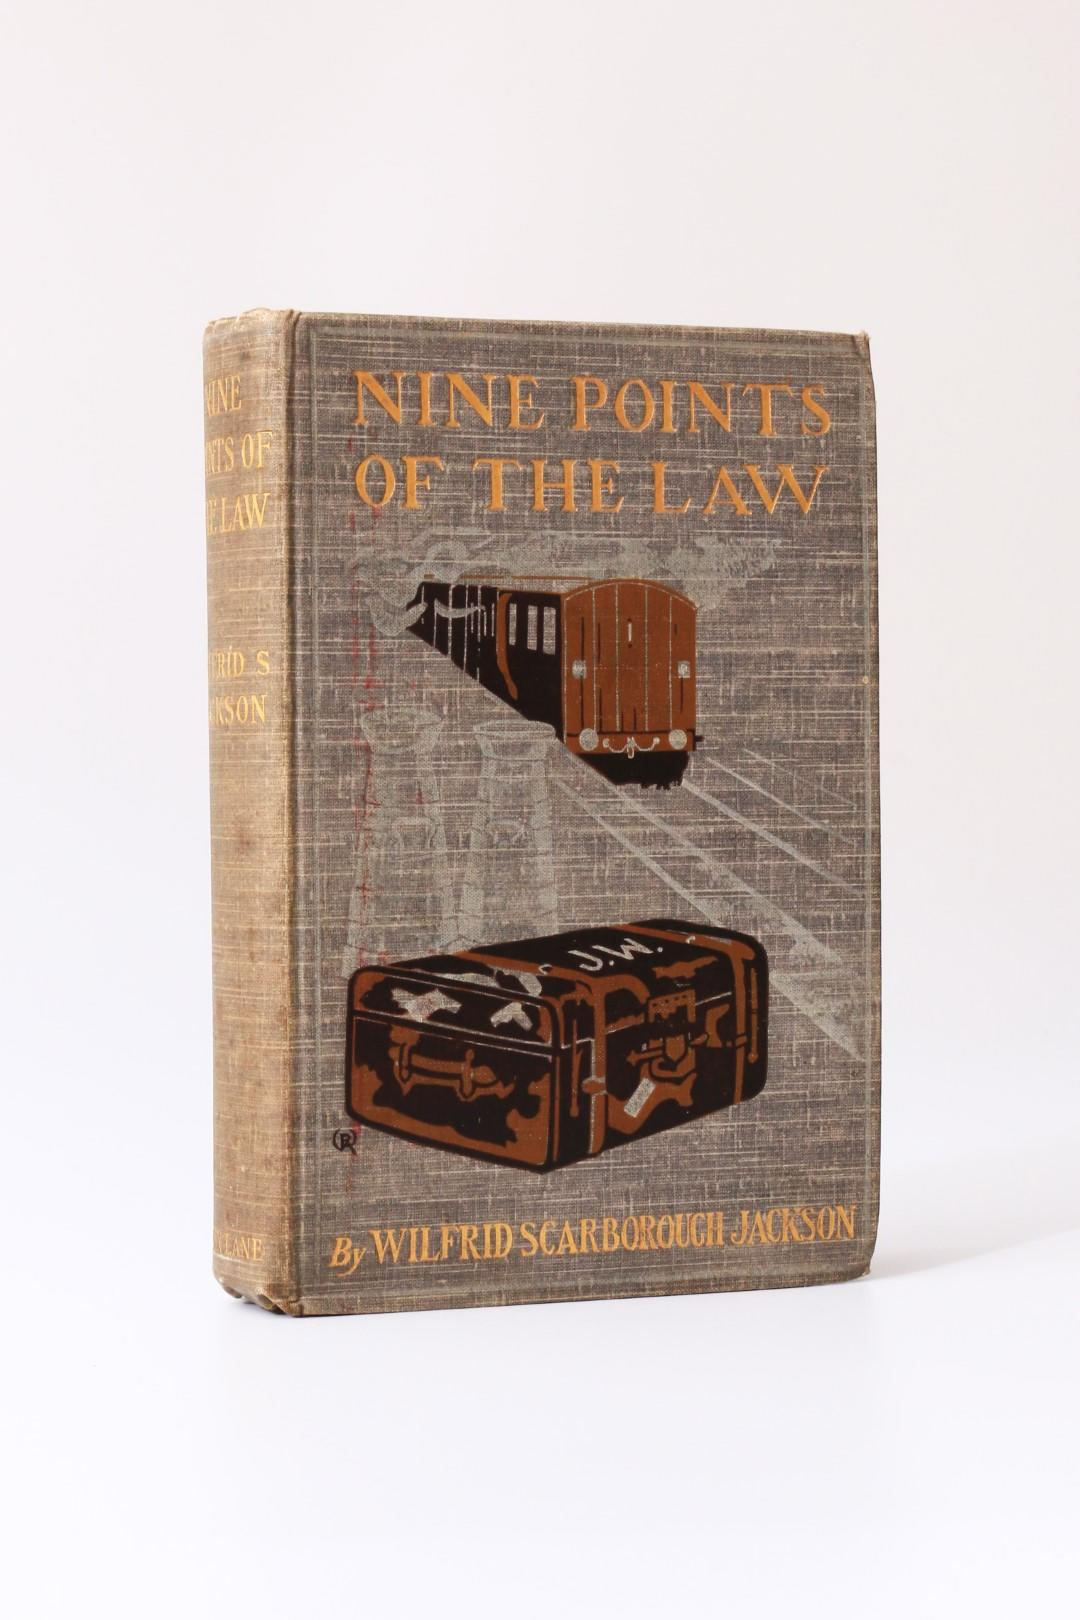 Wilfrid Scarborough Jackson - Nine Points of the Law - John Lane, 1903, First Edition.